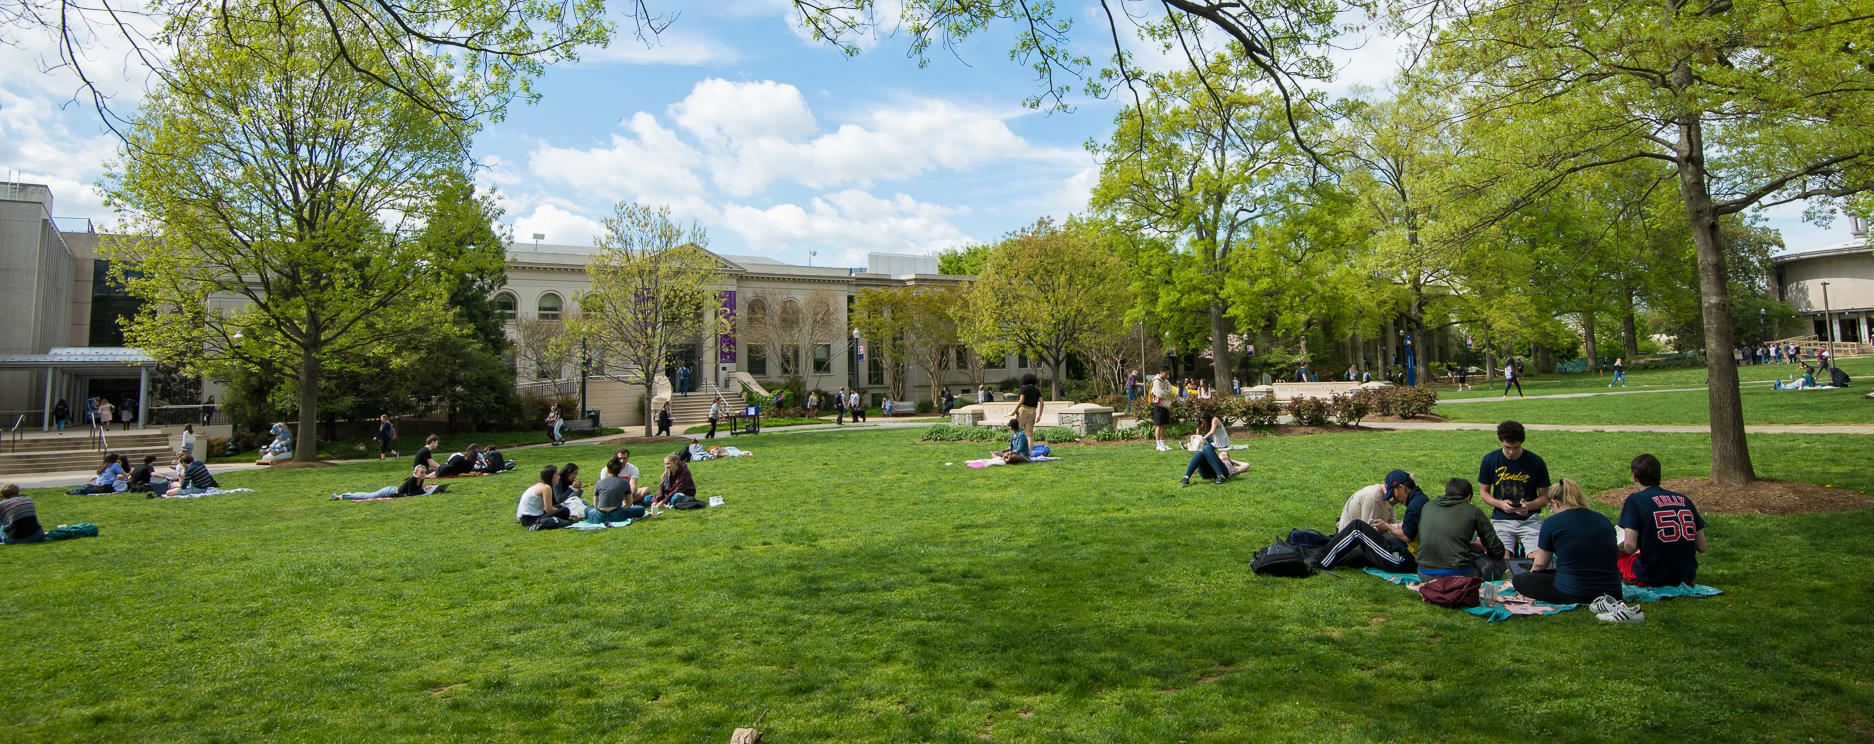 Sunny Day American University Quad